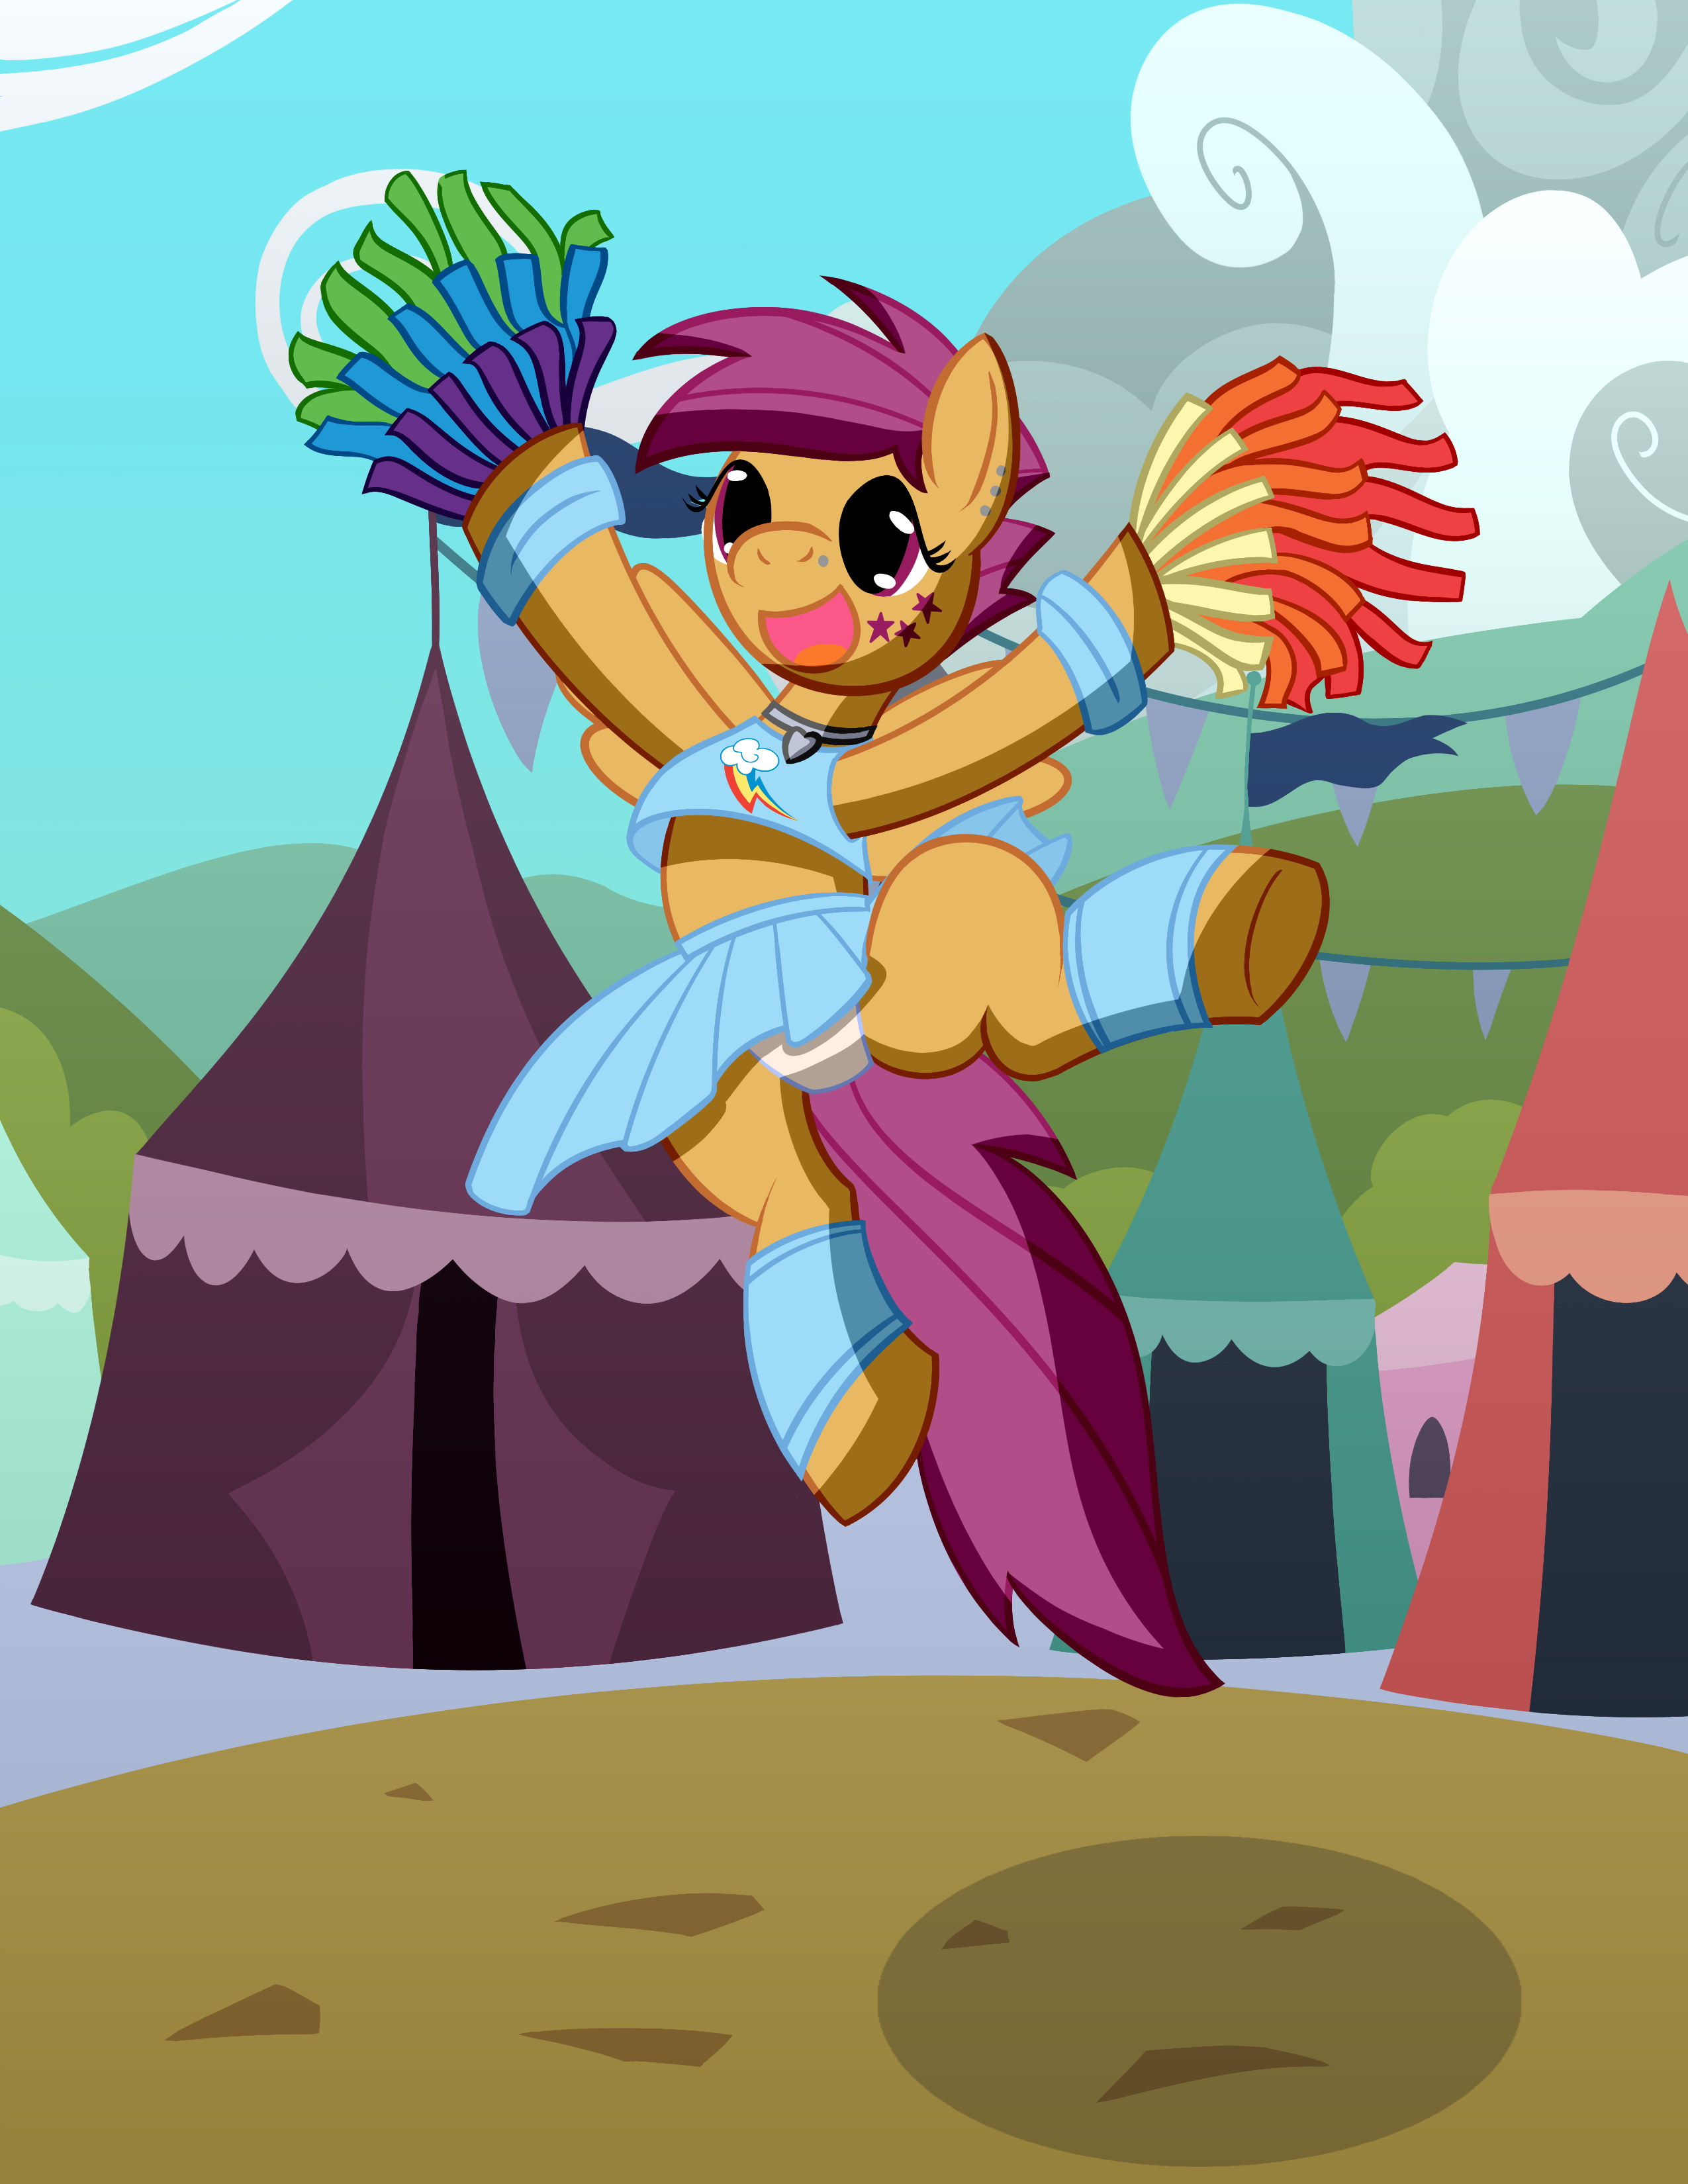 Cheerleader Scootaloo My Little Pony Friendship Is Magic Know Your Meme This video is directed at people age 13 ) i couldn't find the origional meme, i'm sorry. know your meme